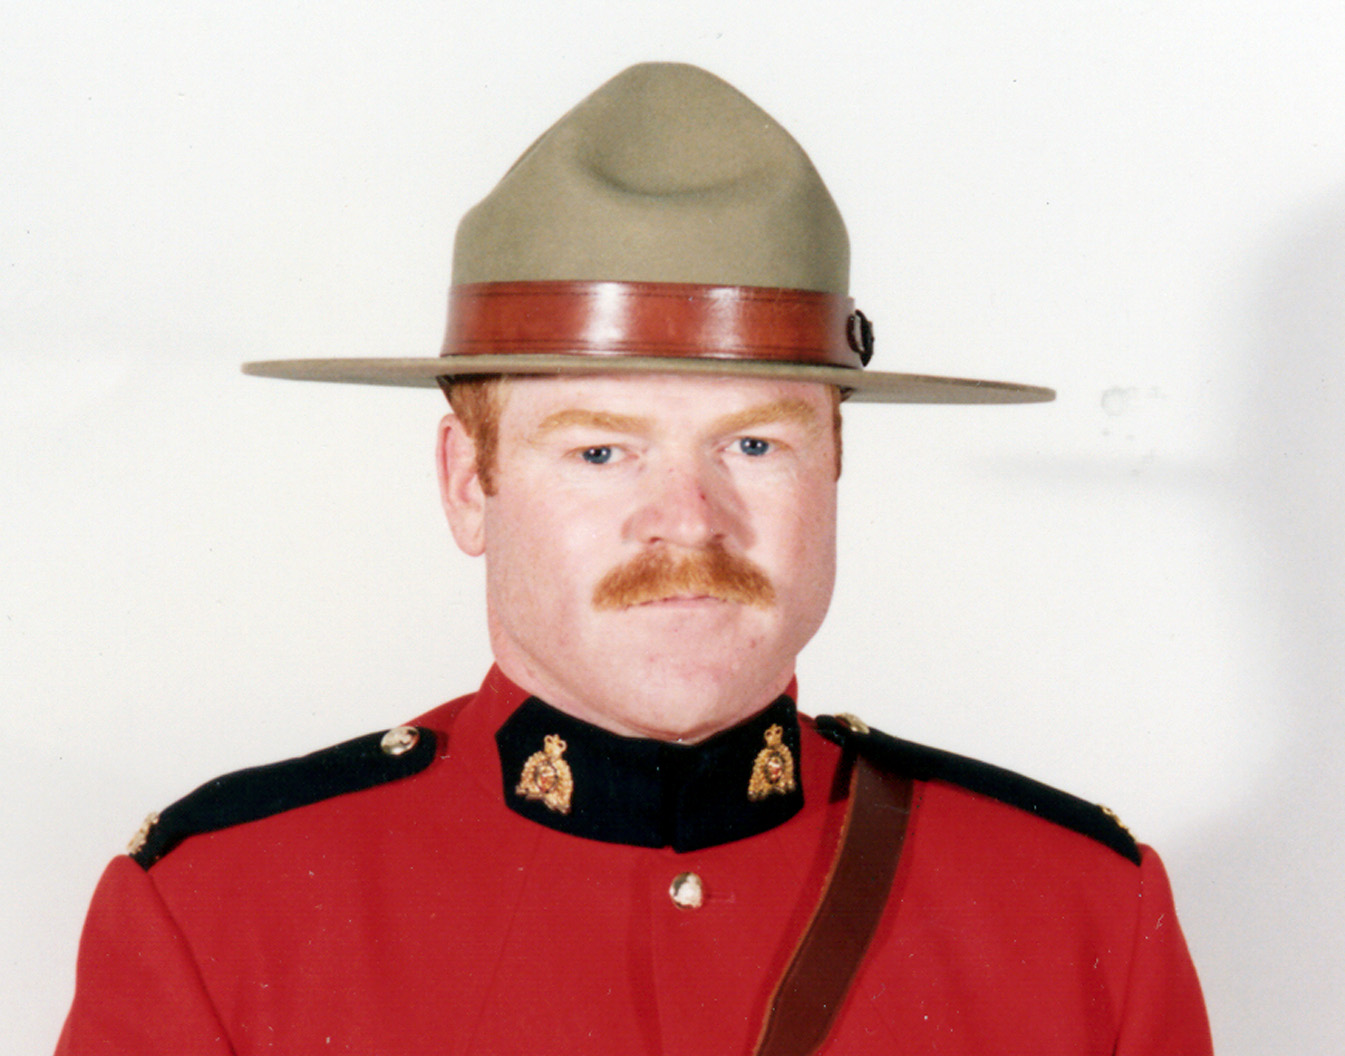 Constable Jurgen Siegfried Seewald – © Her Majesty the Queen in Right of Canada as represented by the Royal Canadian Mounted Police